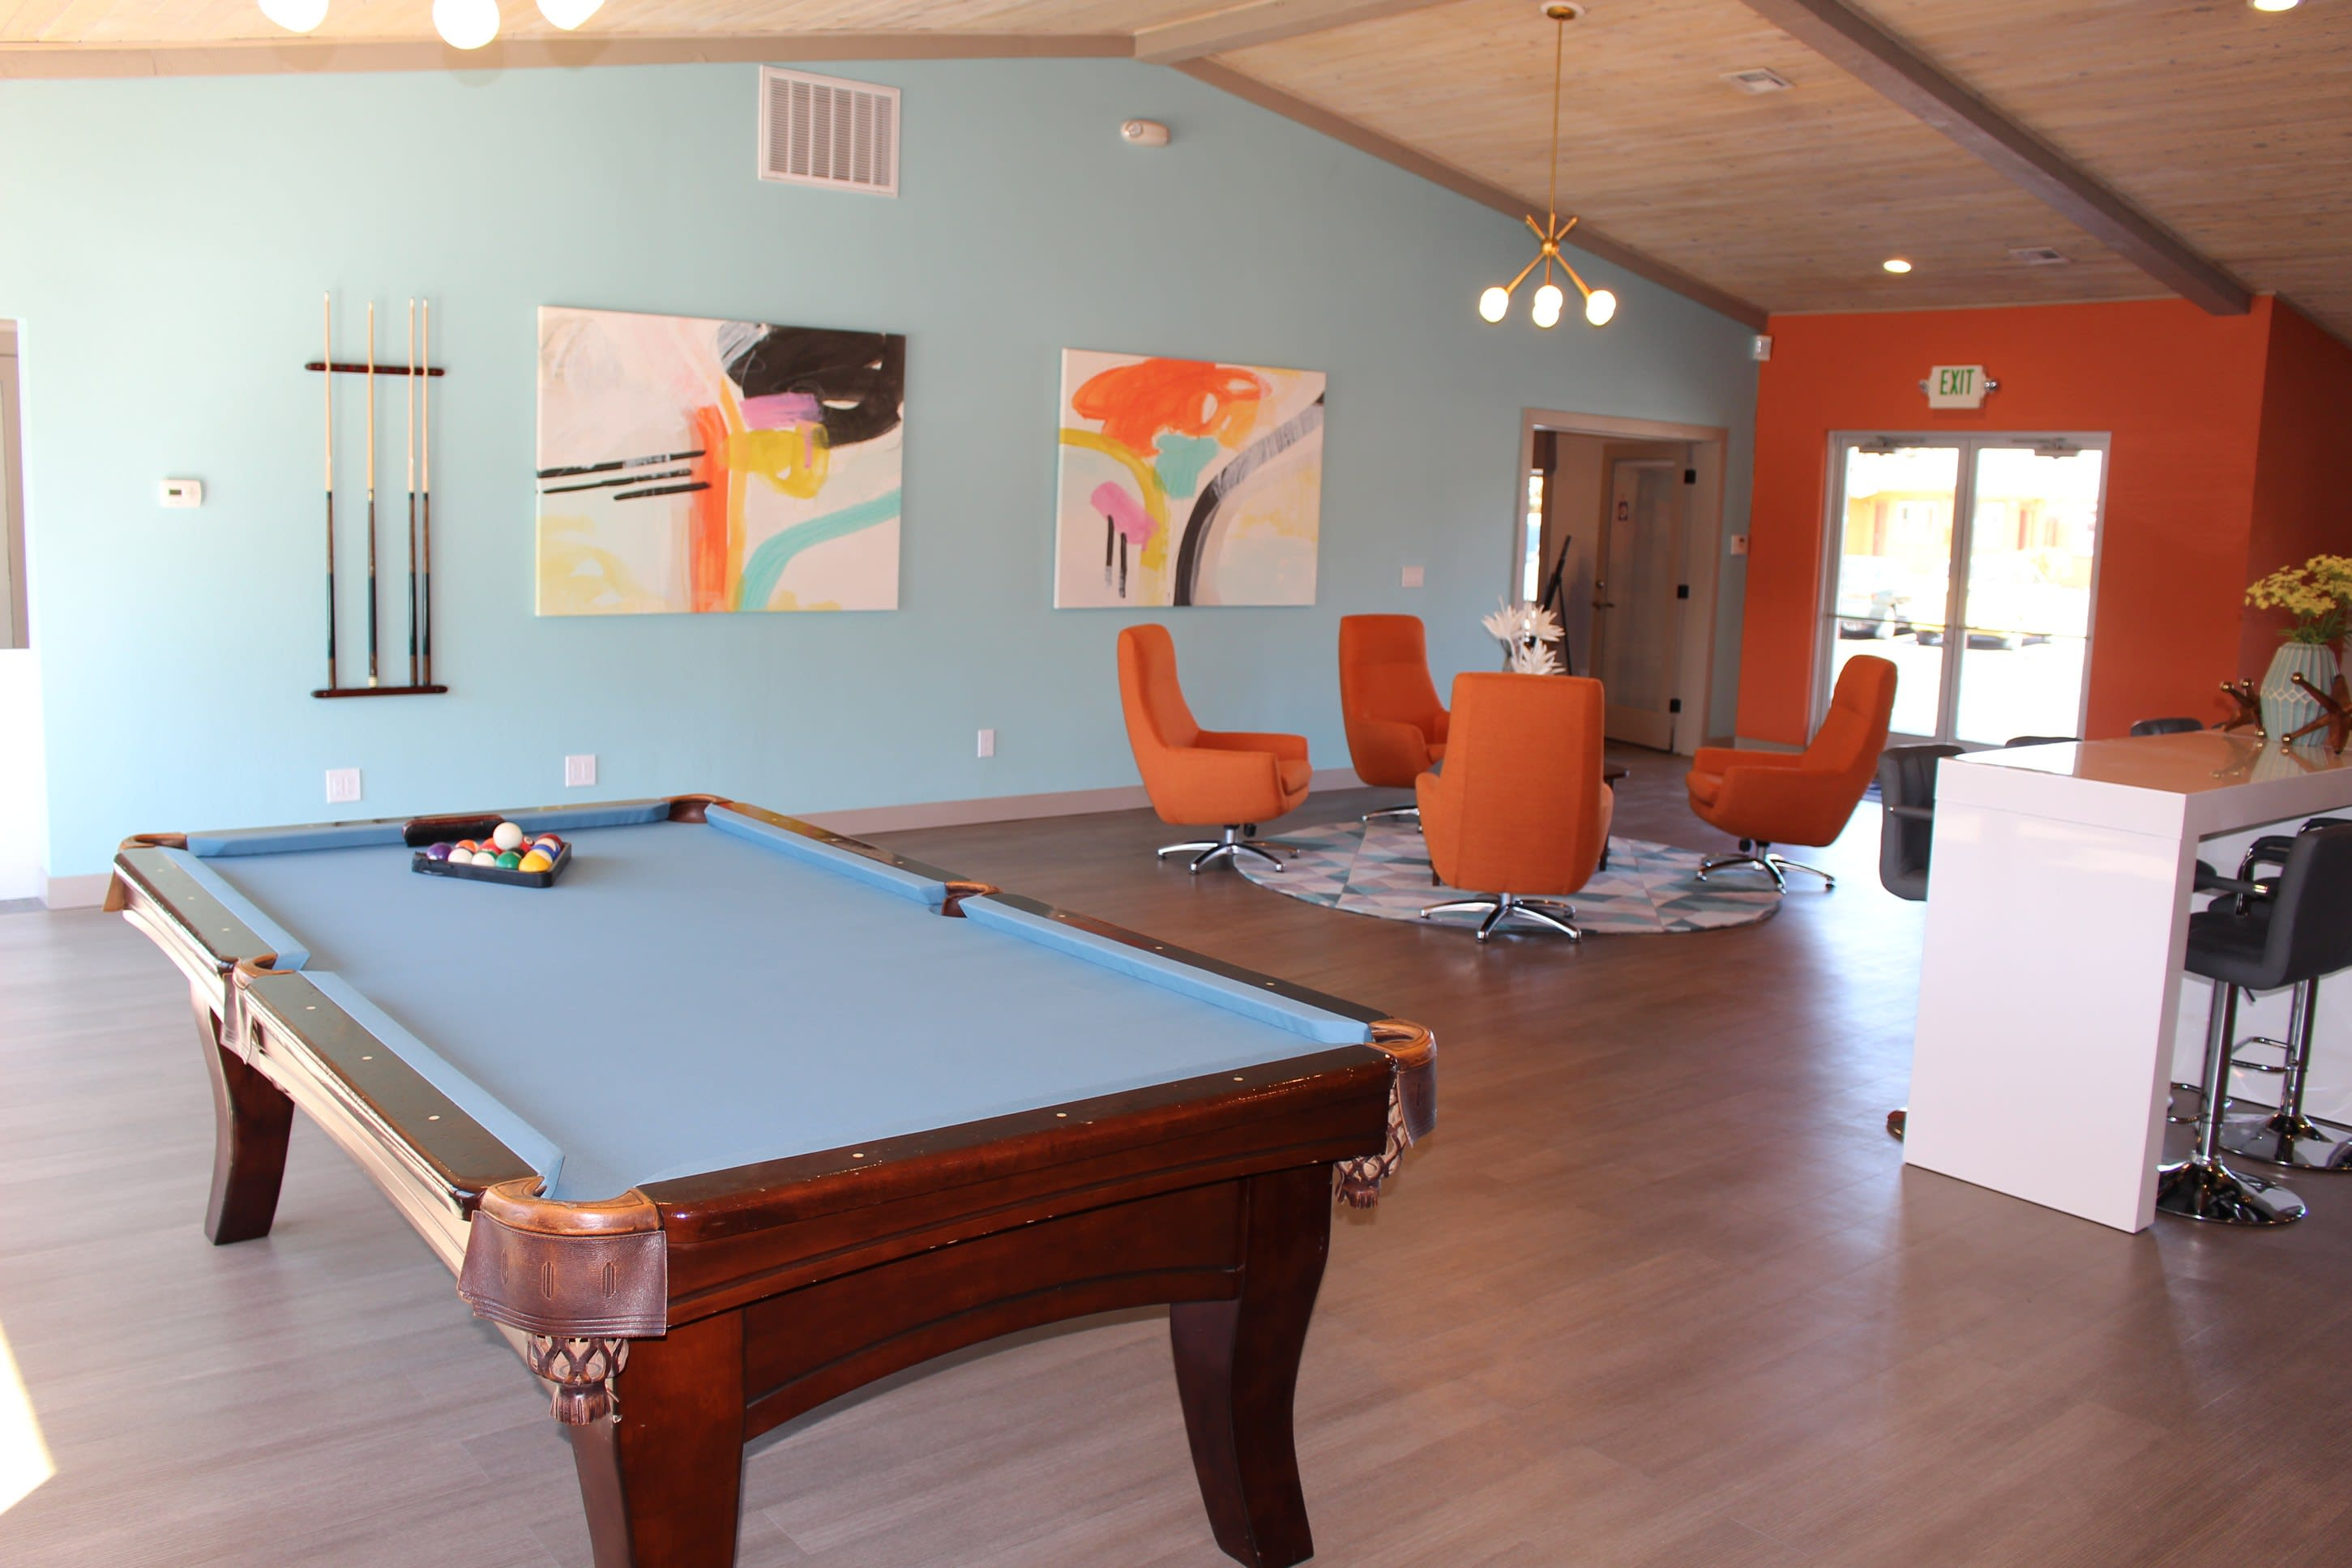 Pool Table in CLubhouse at Village at Iron Blossom Apartment Homes, Reno, Nevada